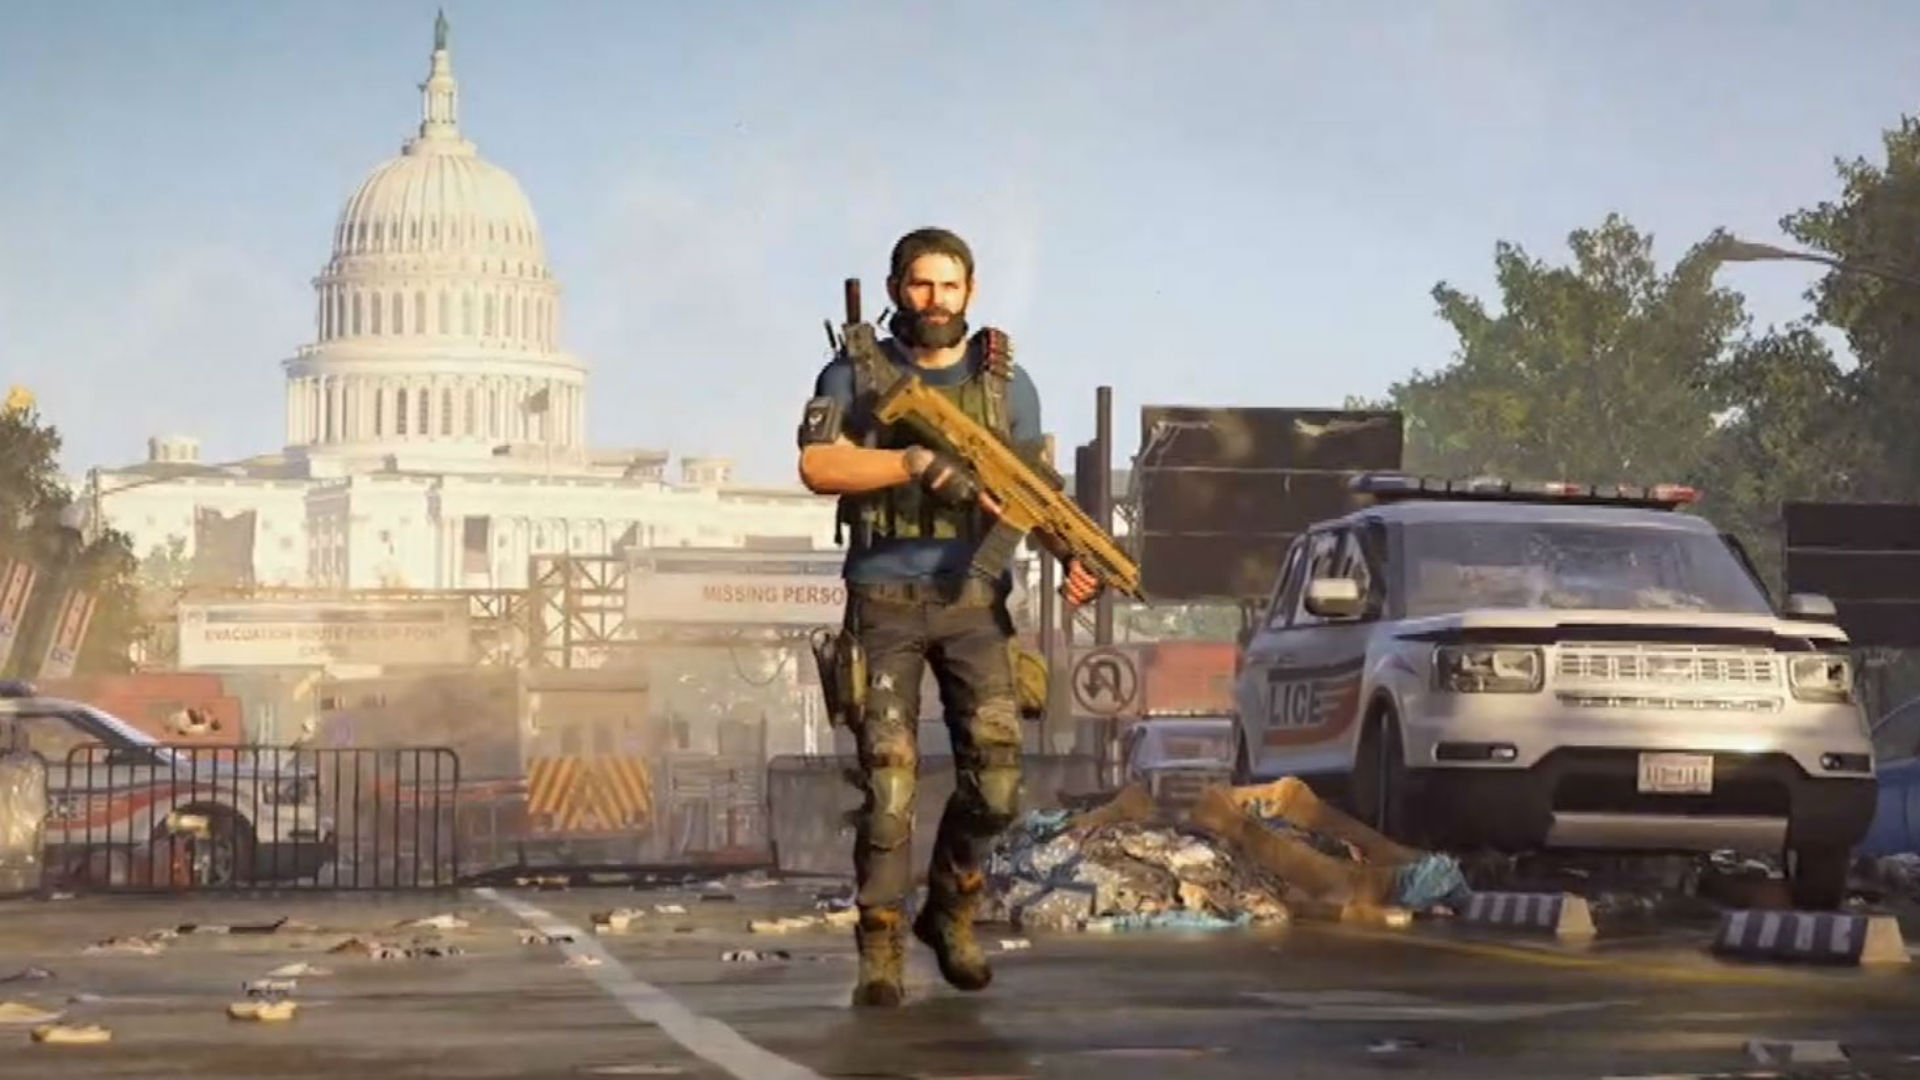 Get 80% off The Division 2 today only, making the Gold Ed just $15